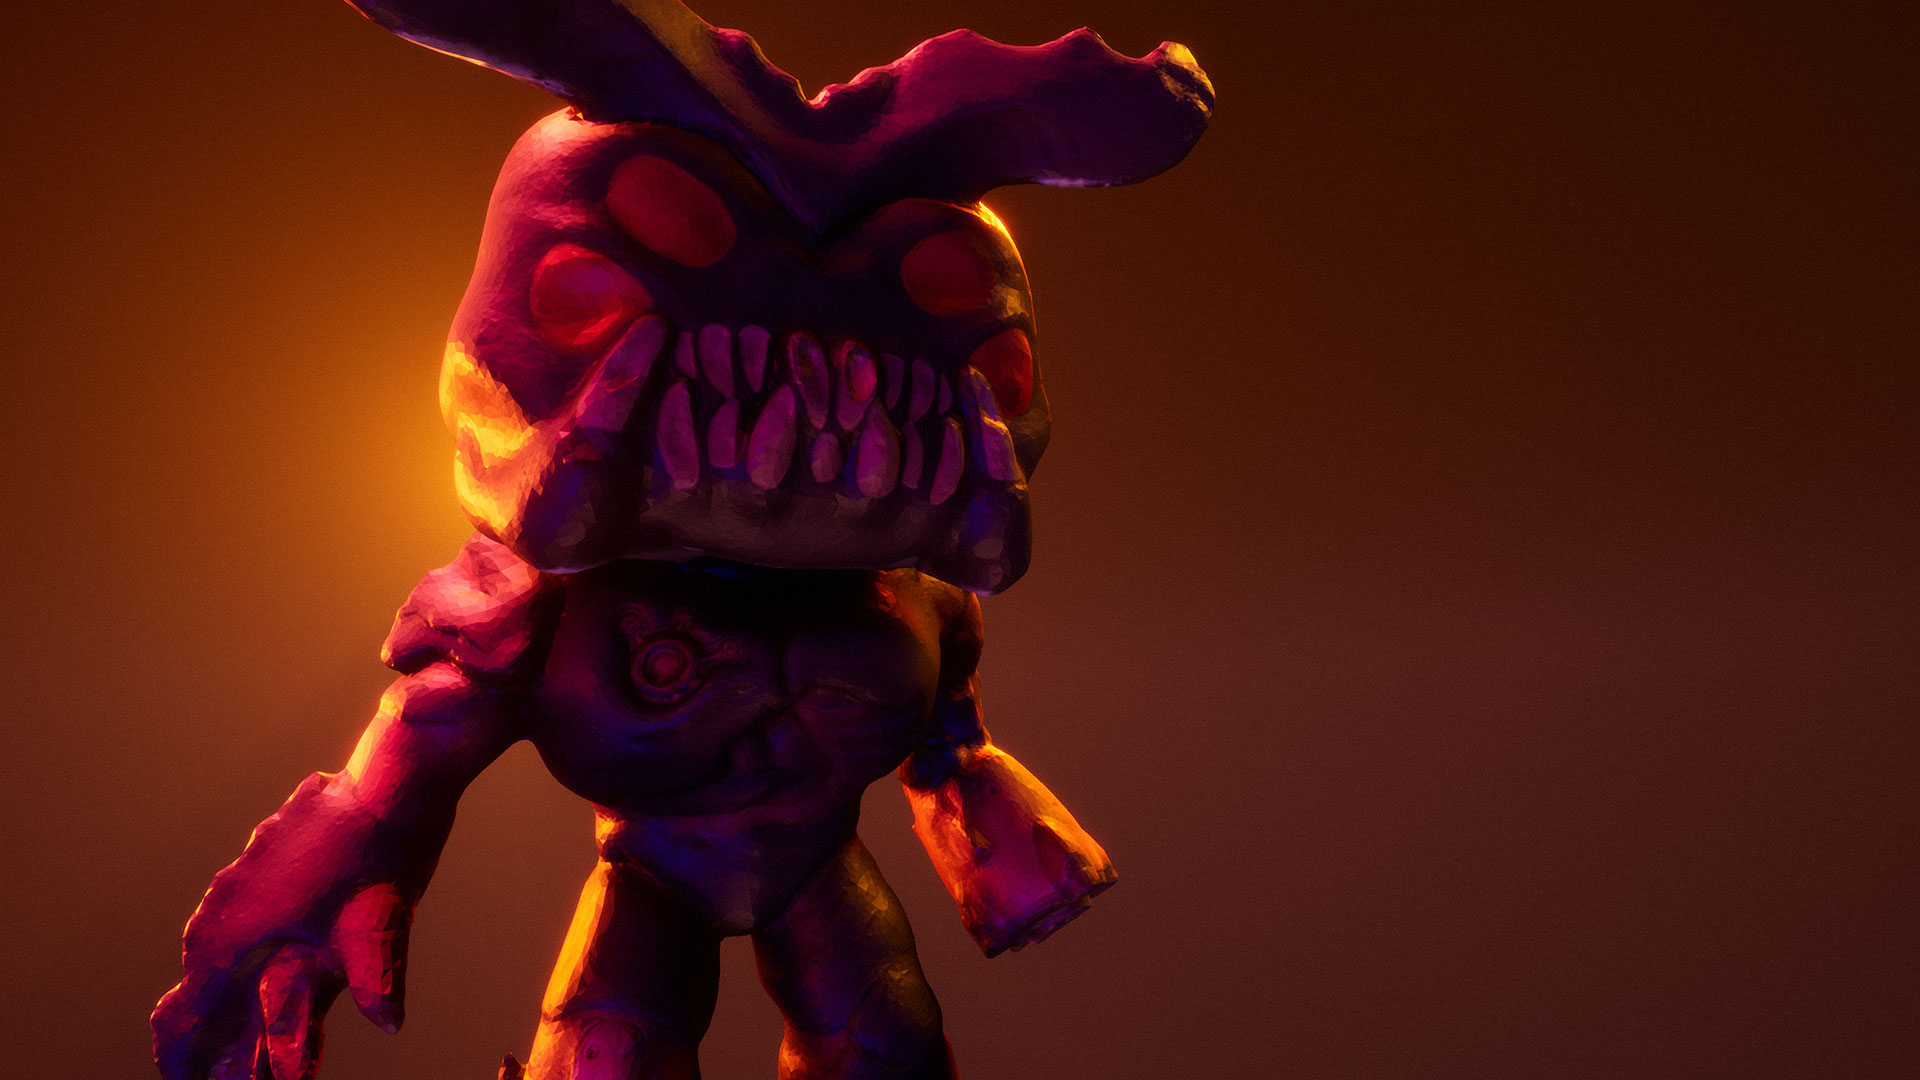 The Cyberdemon Pop! toy, reconstructed with Reality Capture and rendered in Unreal Engine 4